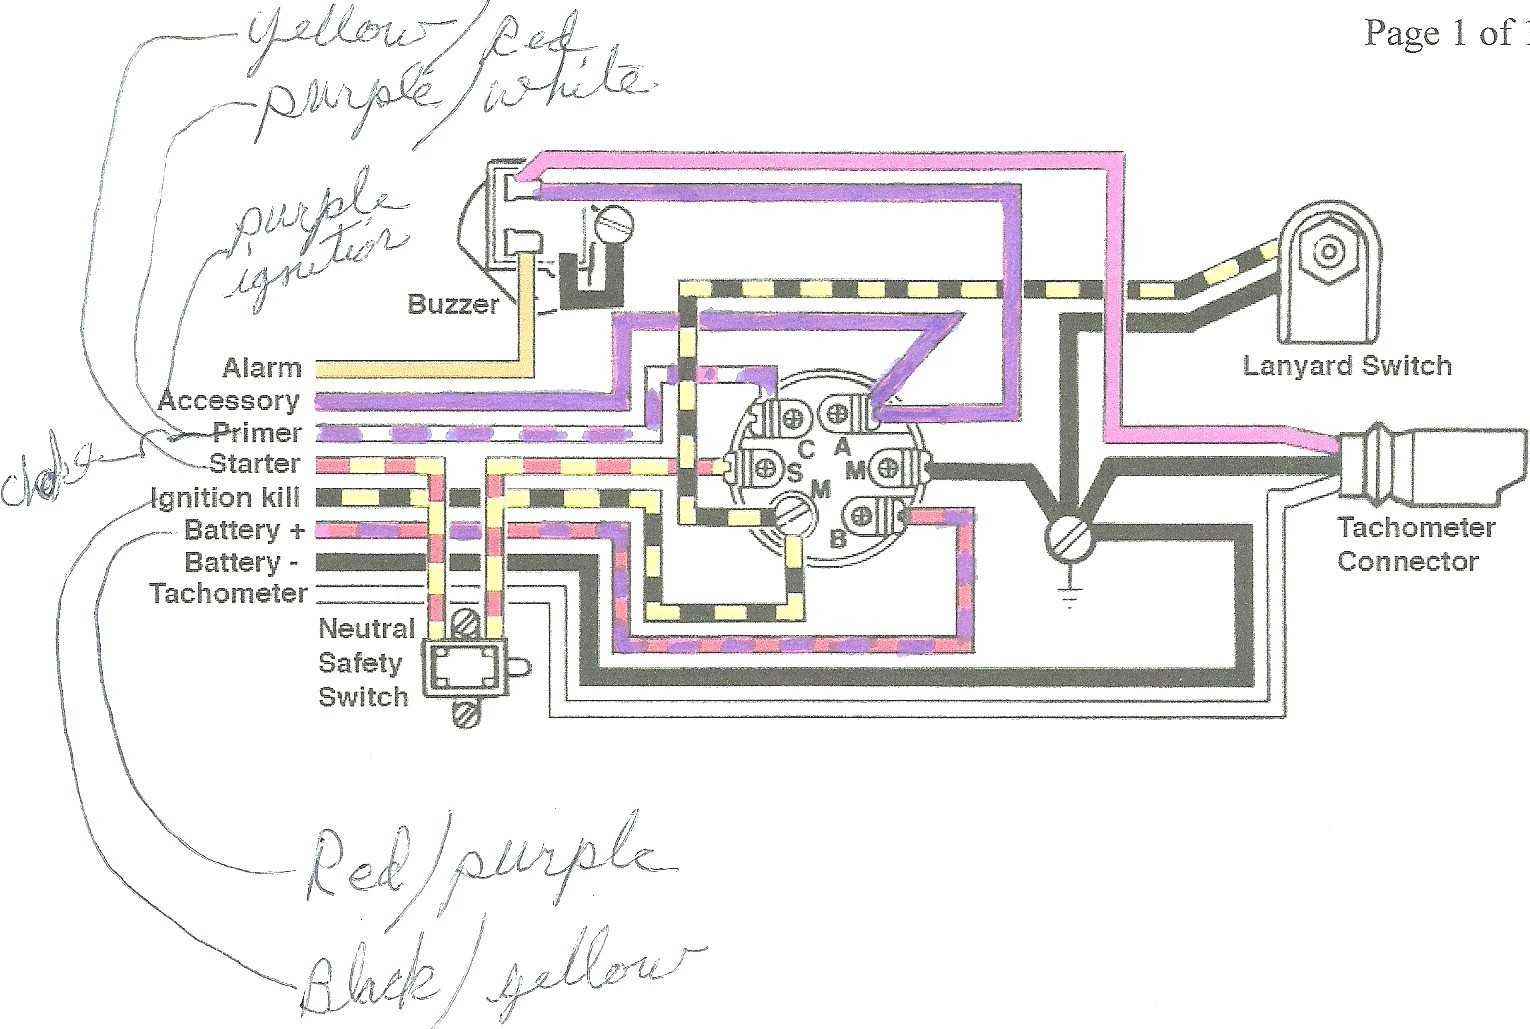 Cart Wiring Diagram Likewise Mercury Outboard Motor Wiring Diagram Boat Ignition Switch Wiring Diagram Collection